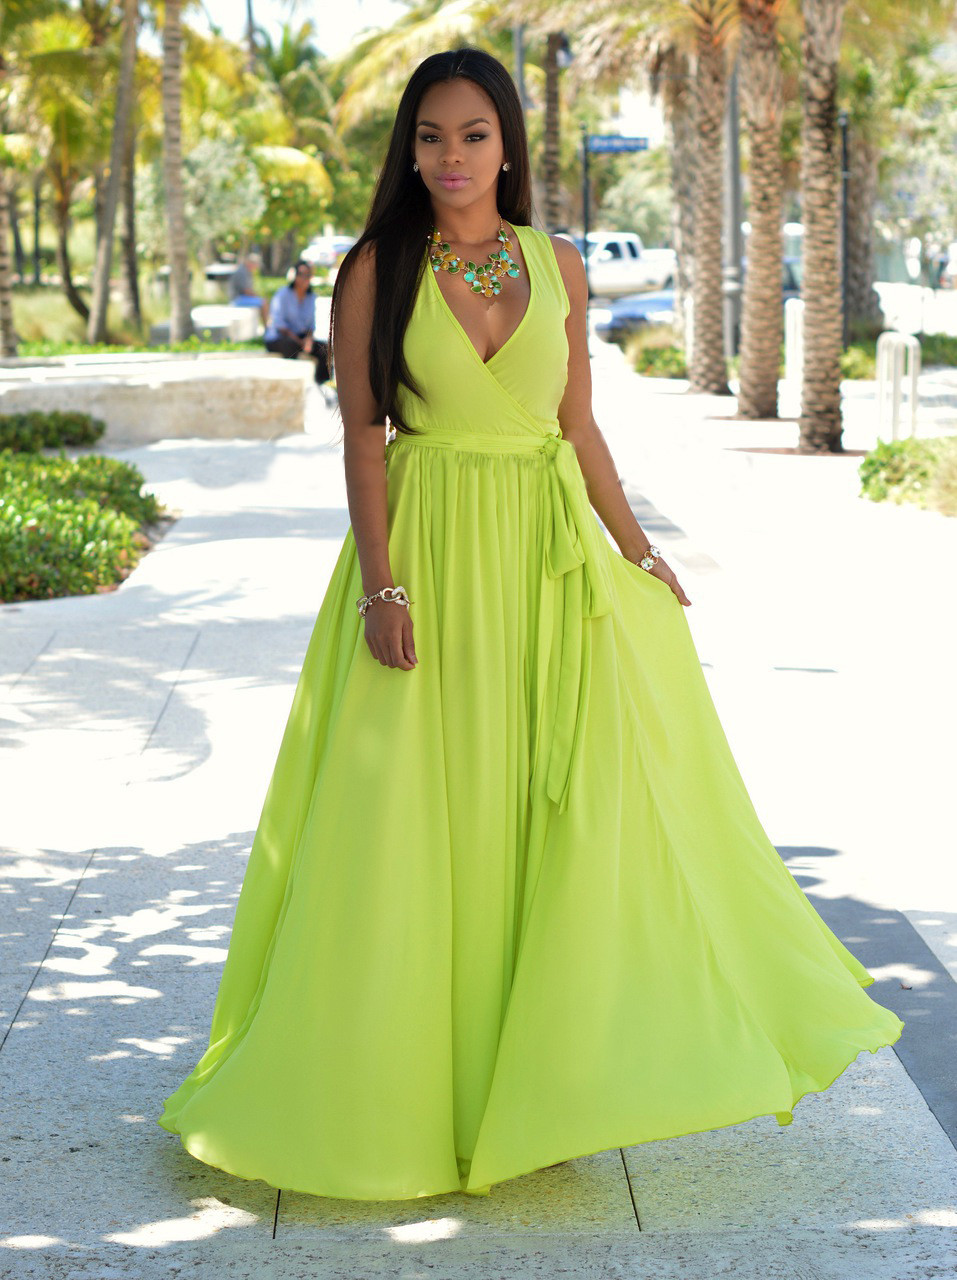 62c163888ca5a US $9.31 15% OFF|Fashion Women clothes Celeb Sexy Boho sleeveless Dress  Ladies V neck cotton Summer Beach Party Sun Dresses one pieces-in Dresses  from ...